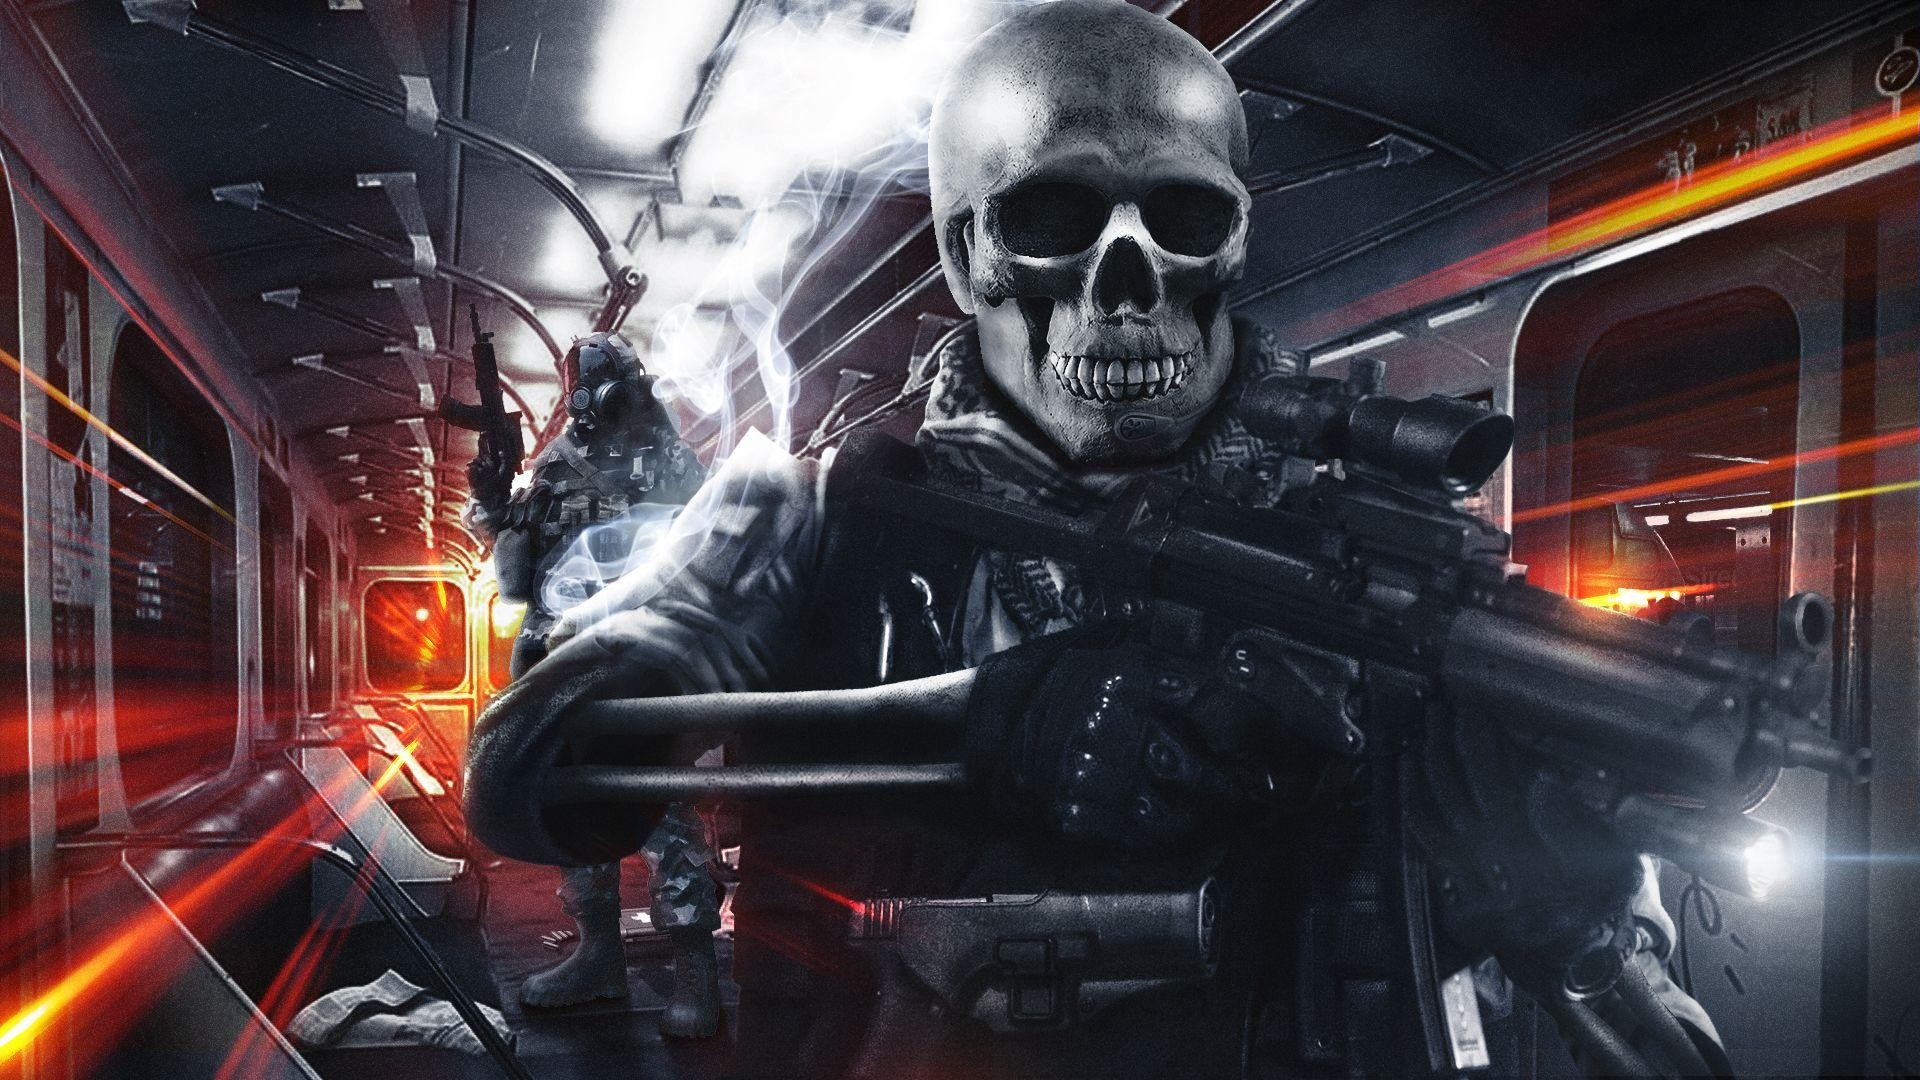 Battlefield 3 wallpapers pictures images battlefield 3 full hd wallpaper voltagebd Image collections